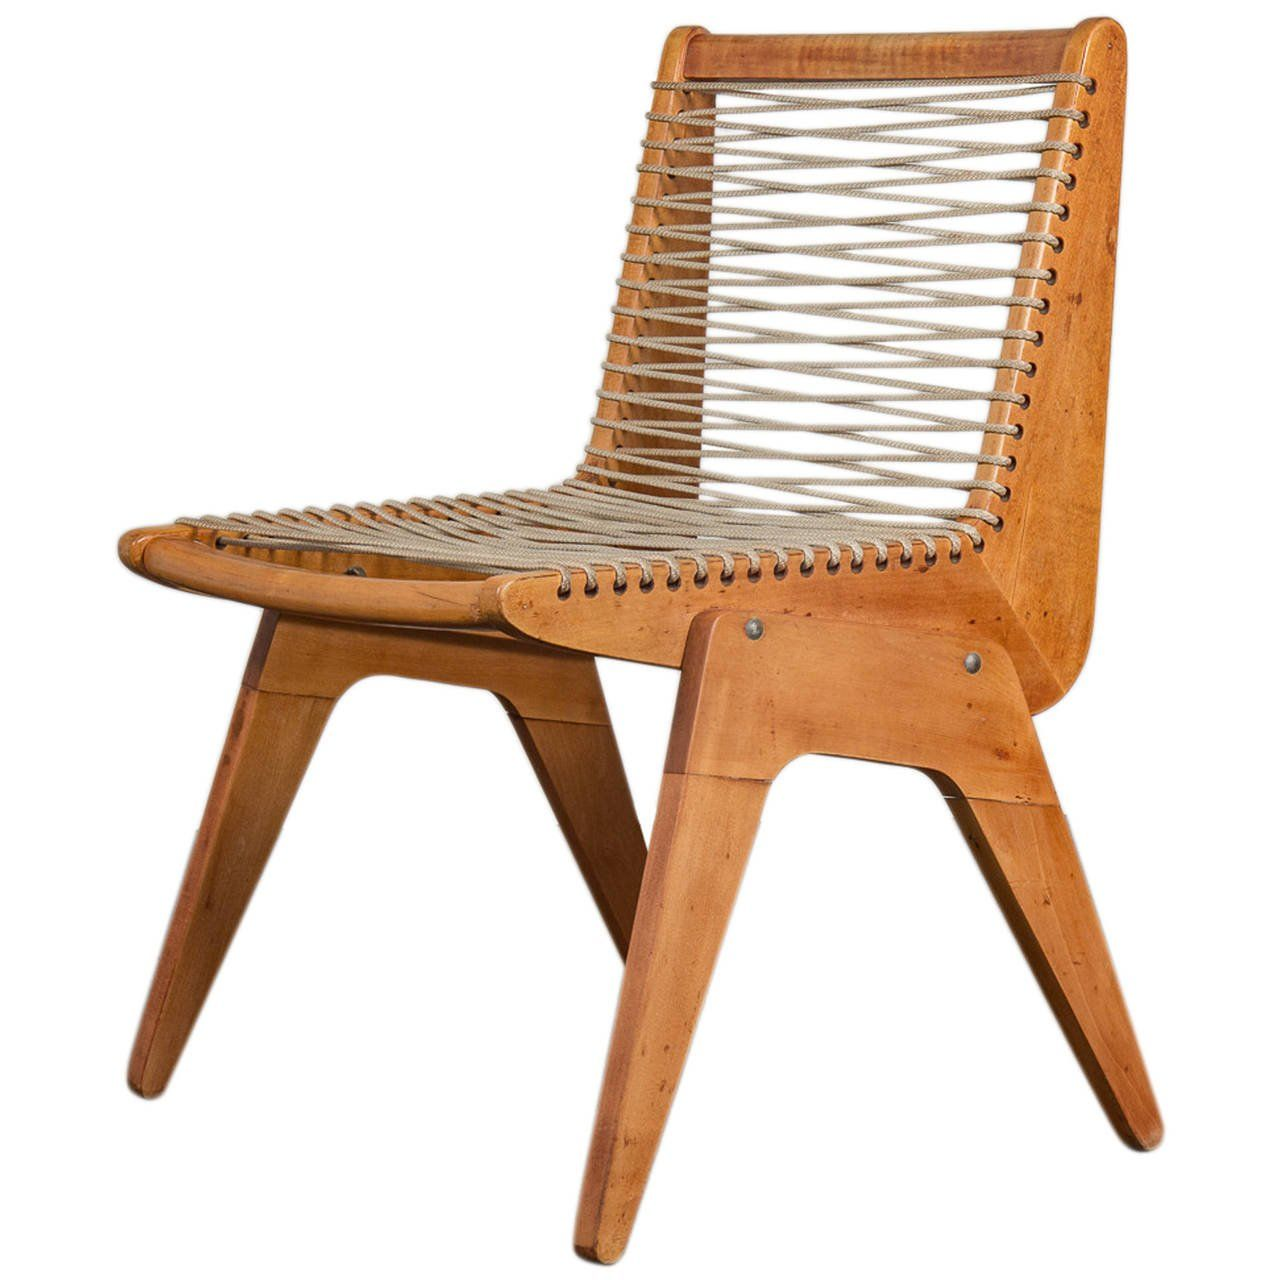 Kingston Rope Chair For Sale At 1stdibs